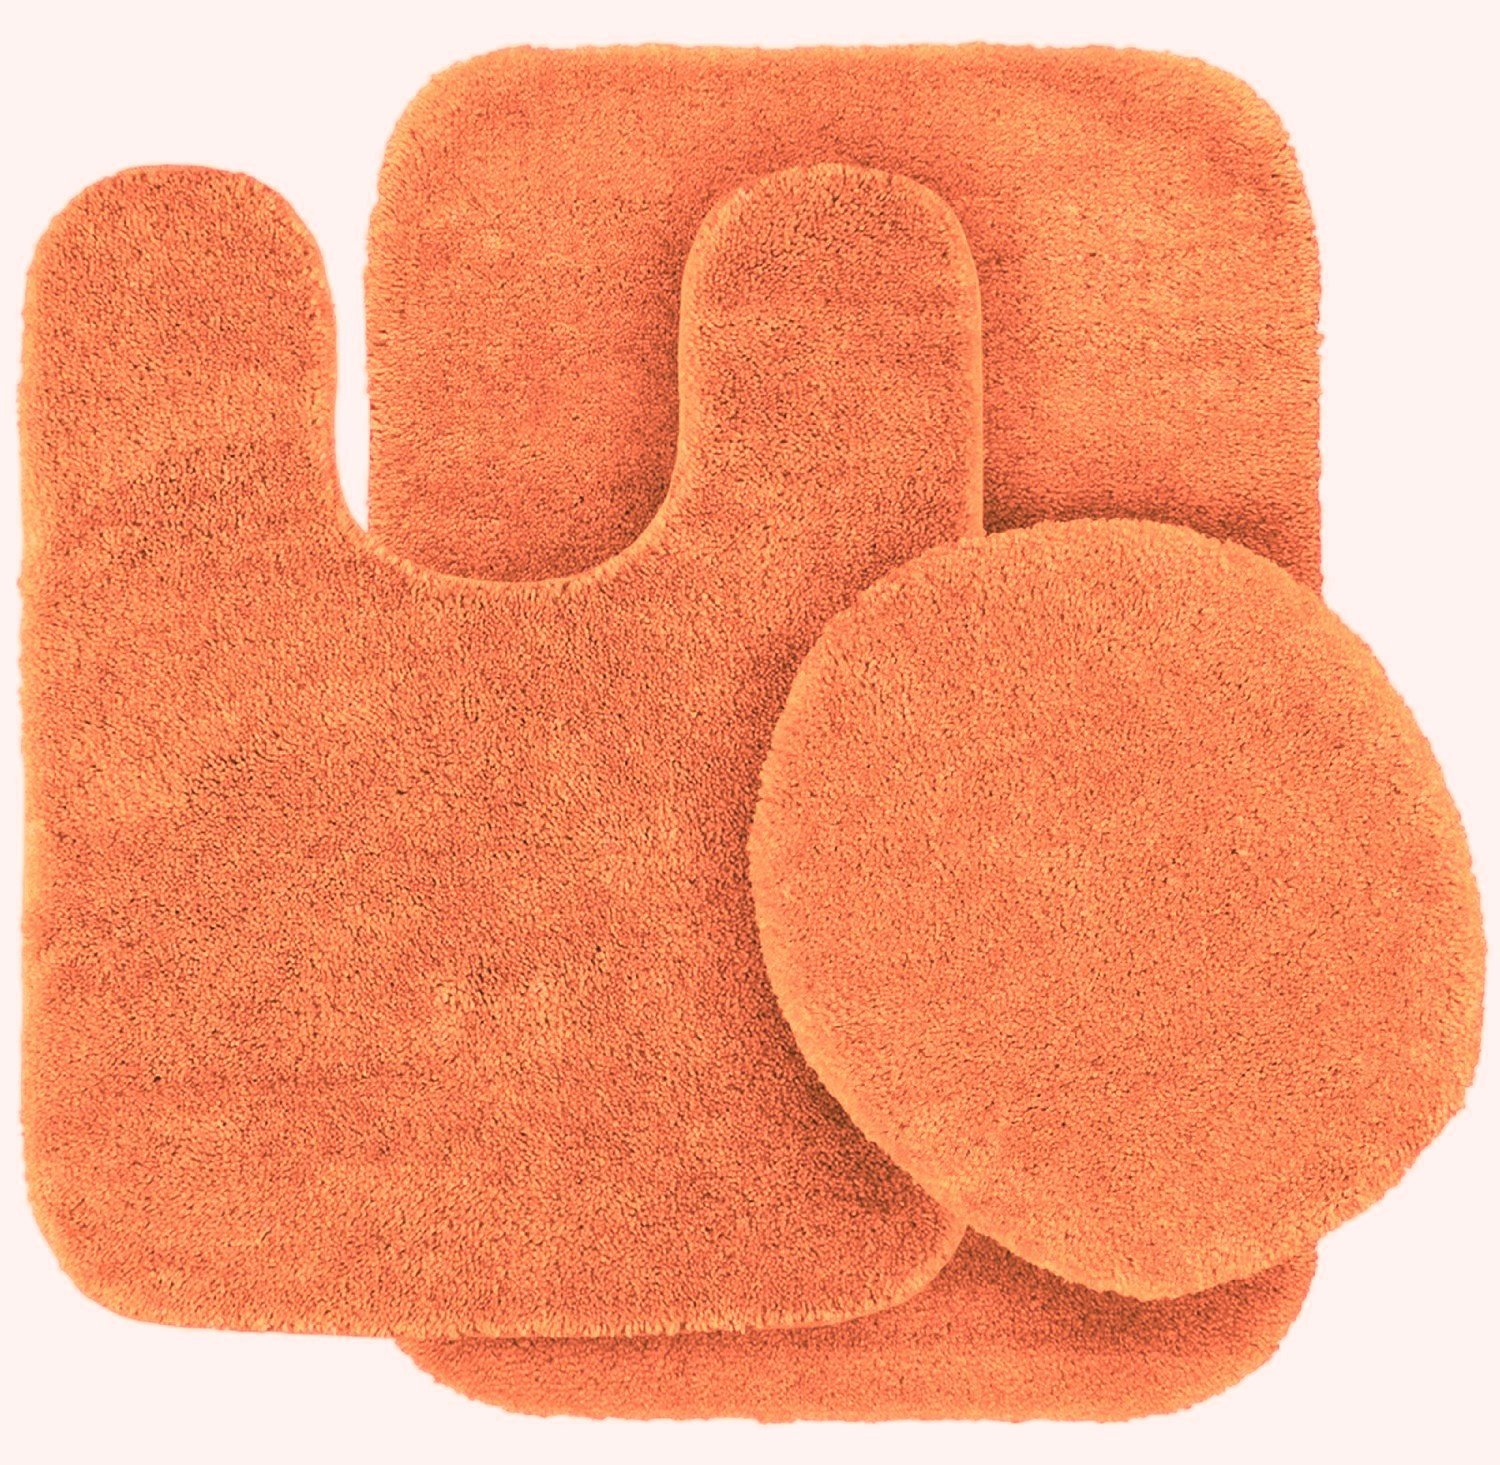 3 Pc ORANGE Bathroom Set Bath Mat RUG, Contour, and Toilet Lid Cover, with Rubber Backing #6